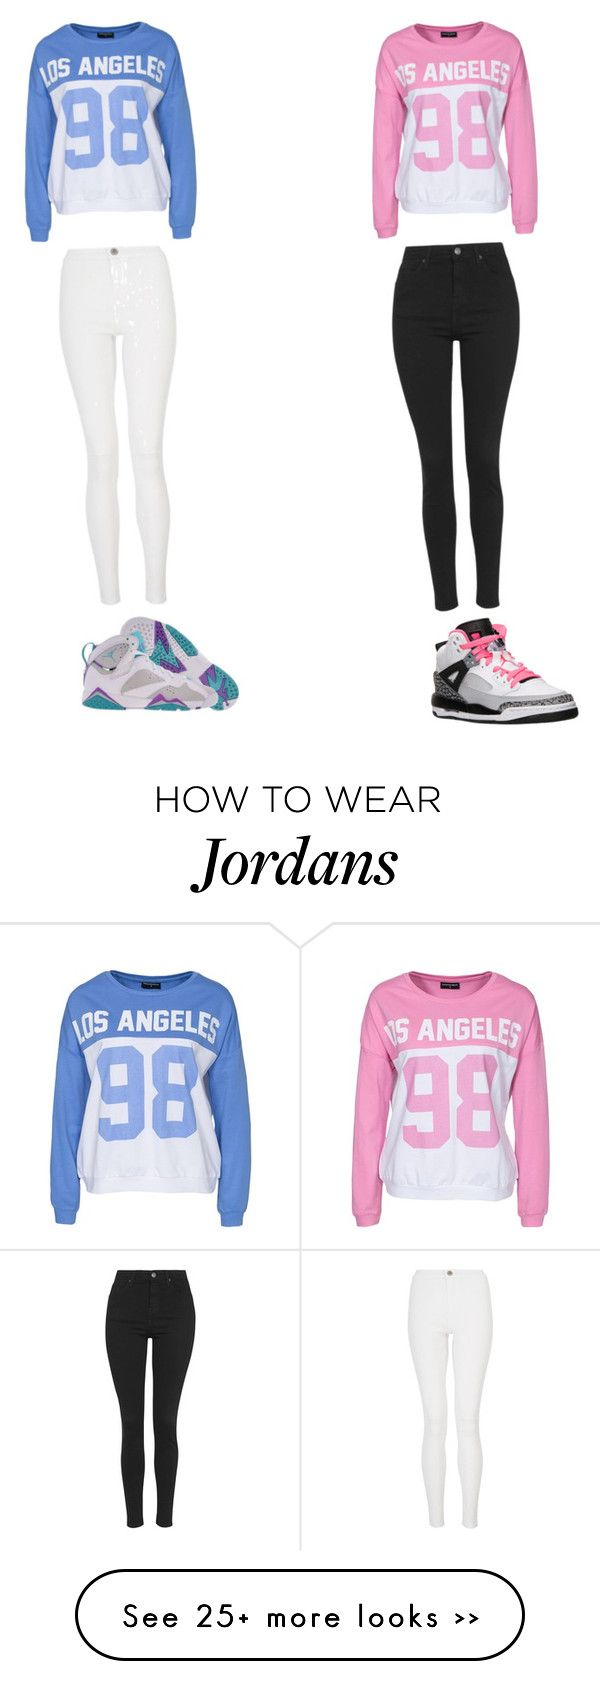 """Untitled #28"" by luv-me-lexi on Polyvore"